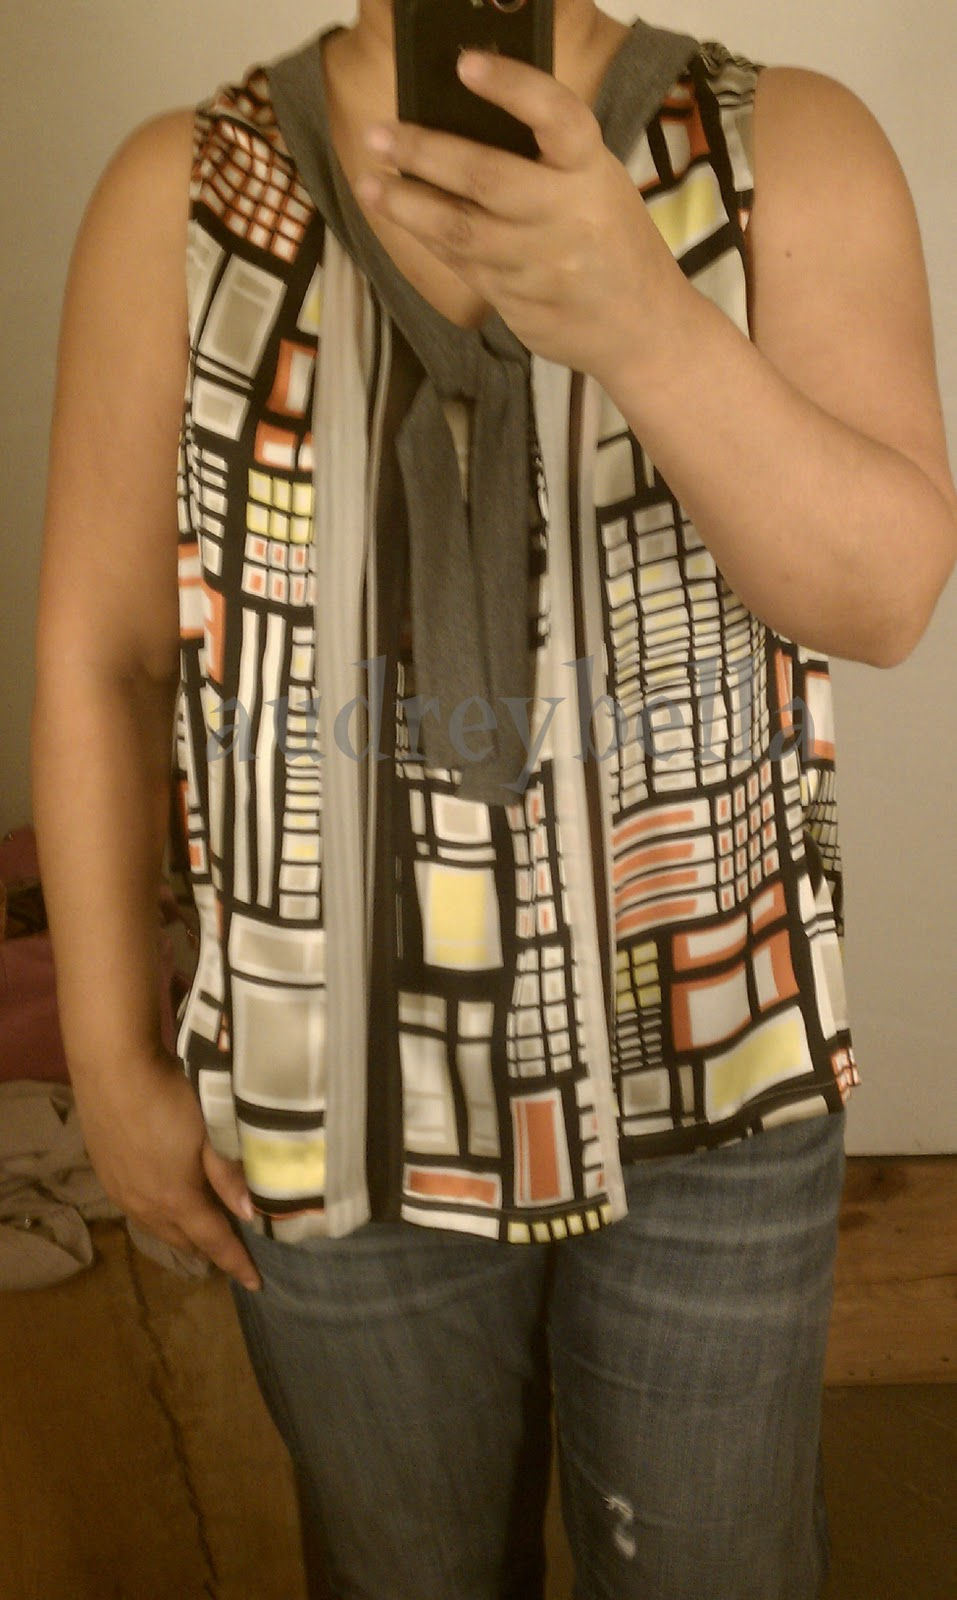 f37b759d7cd9 Bargello Tank, S, Orange Motif – Very comfortable and flowy. There are some  gray panels that are very sheer so either some strategic tucking/belting or  a ...